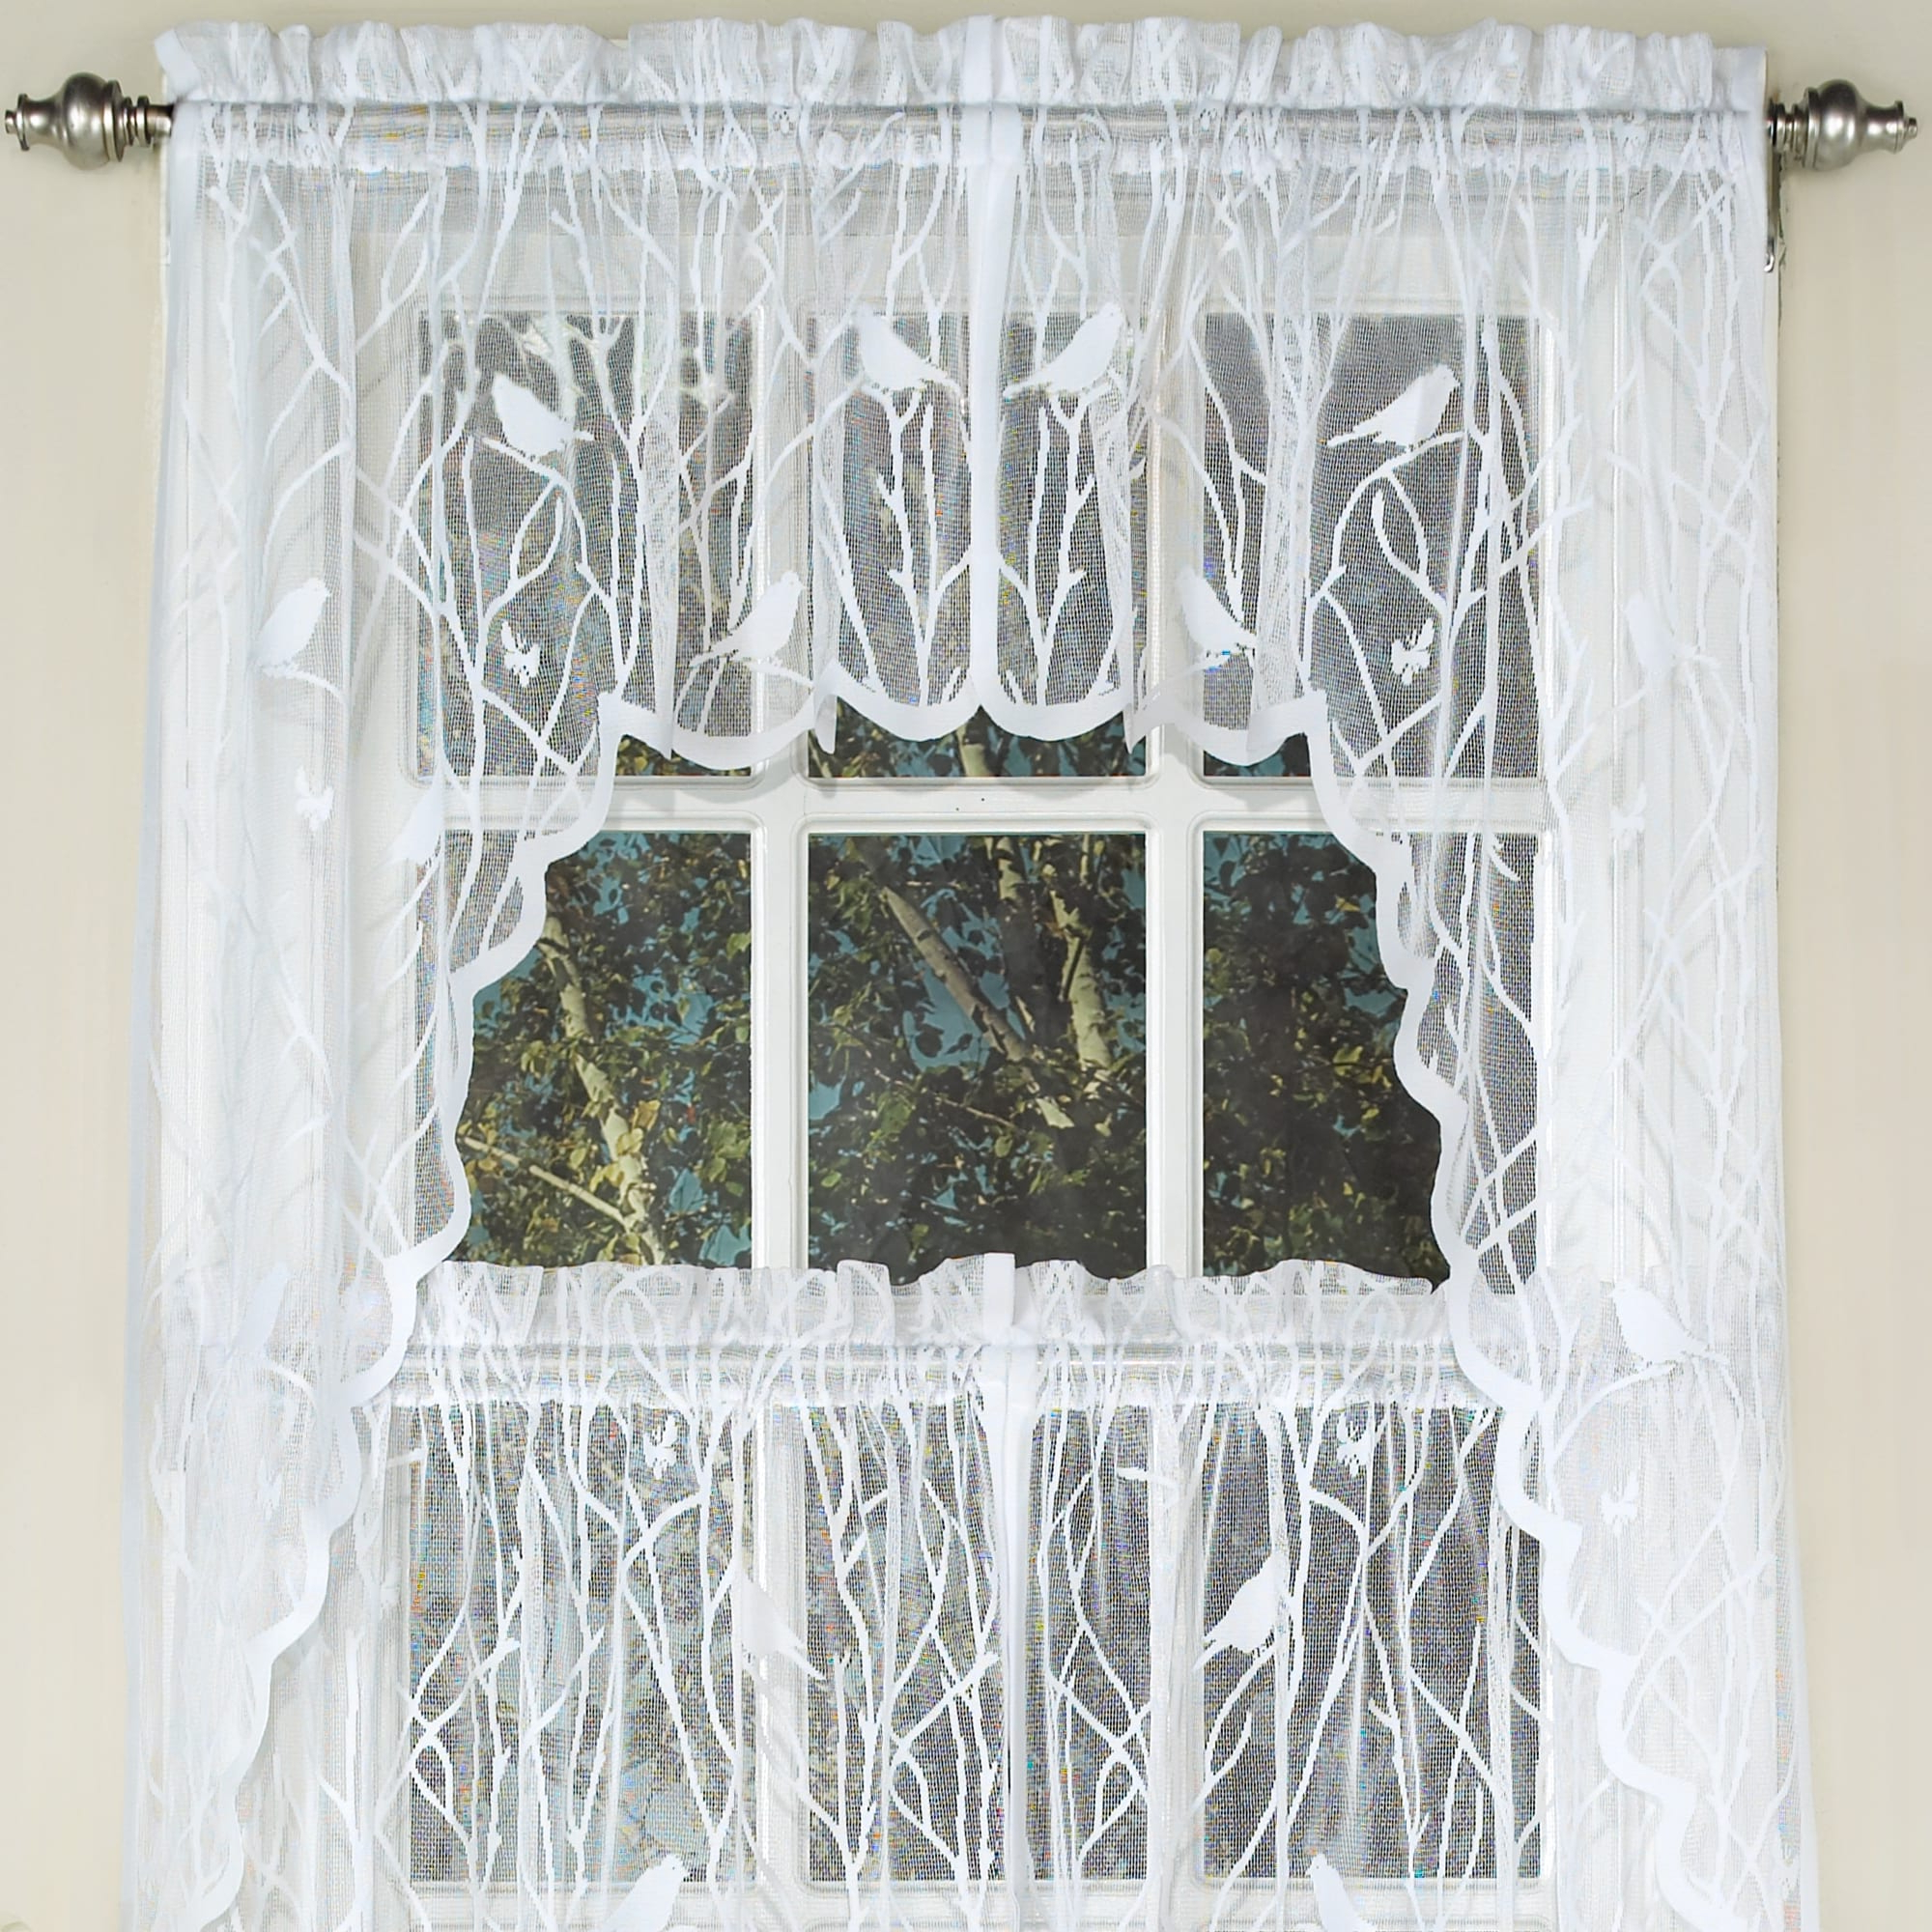 Sweet Home Collection White Polyester Knit Lace Bird Motif Throughout Popular Ivory Knit Lace Bird Motif Window Curtain (View 4 of 20)